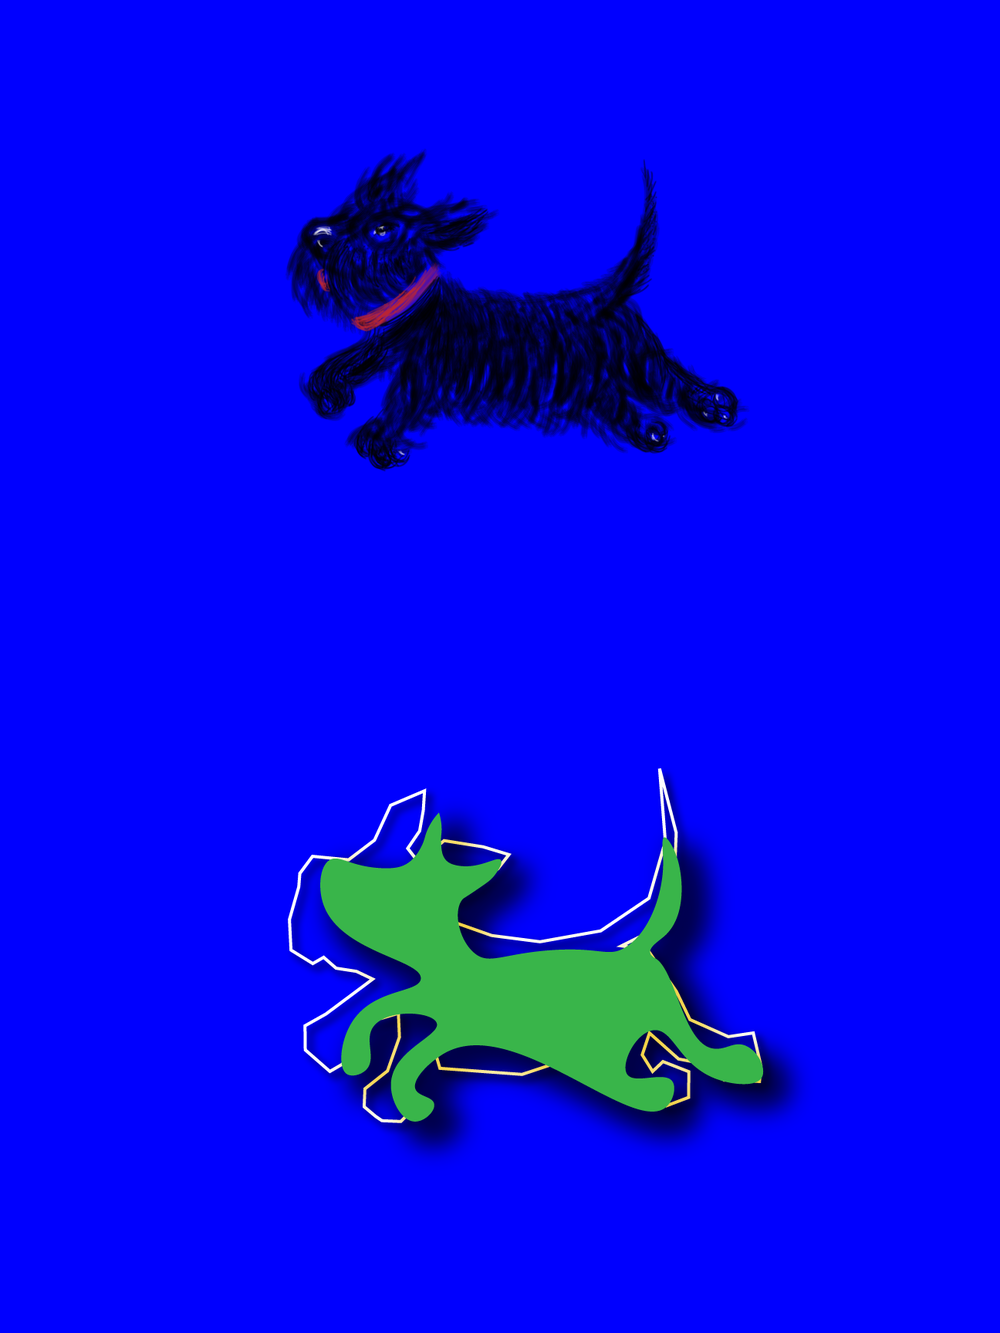 variation of a dog logo